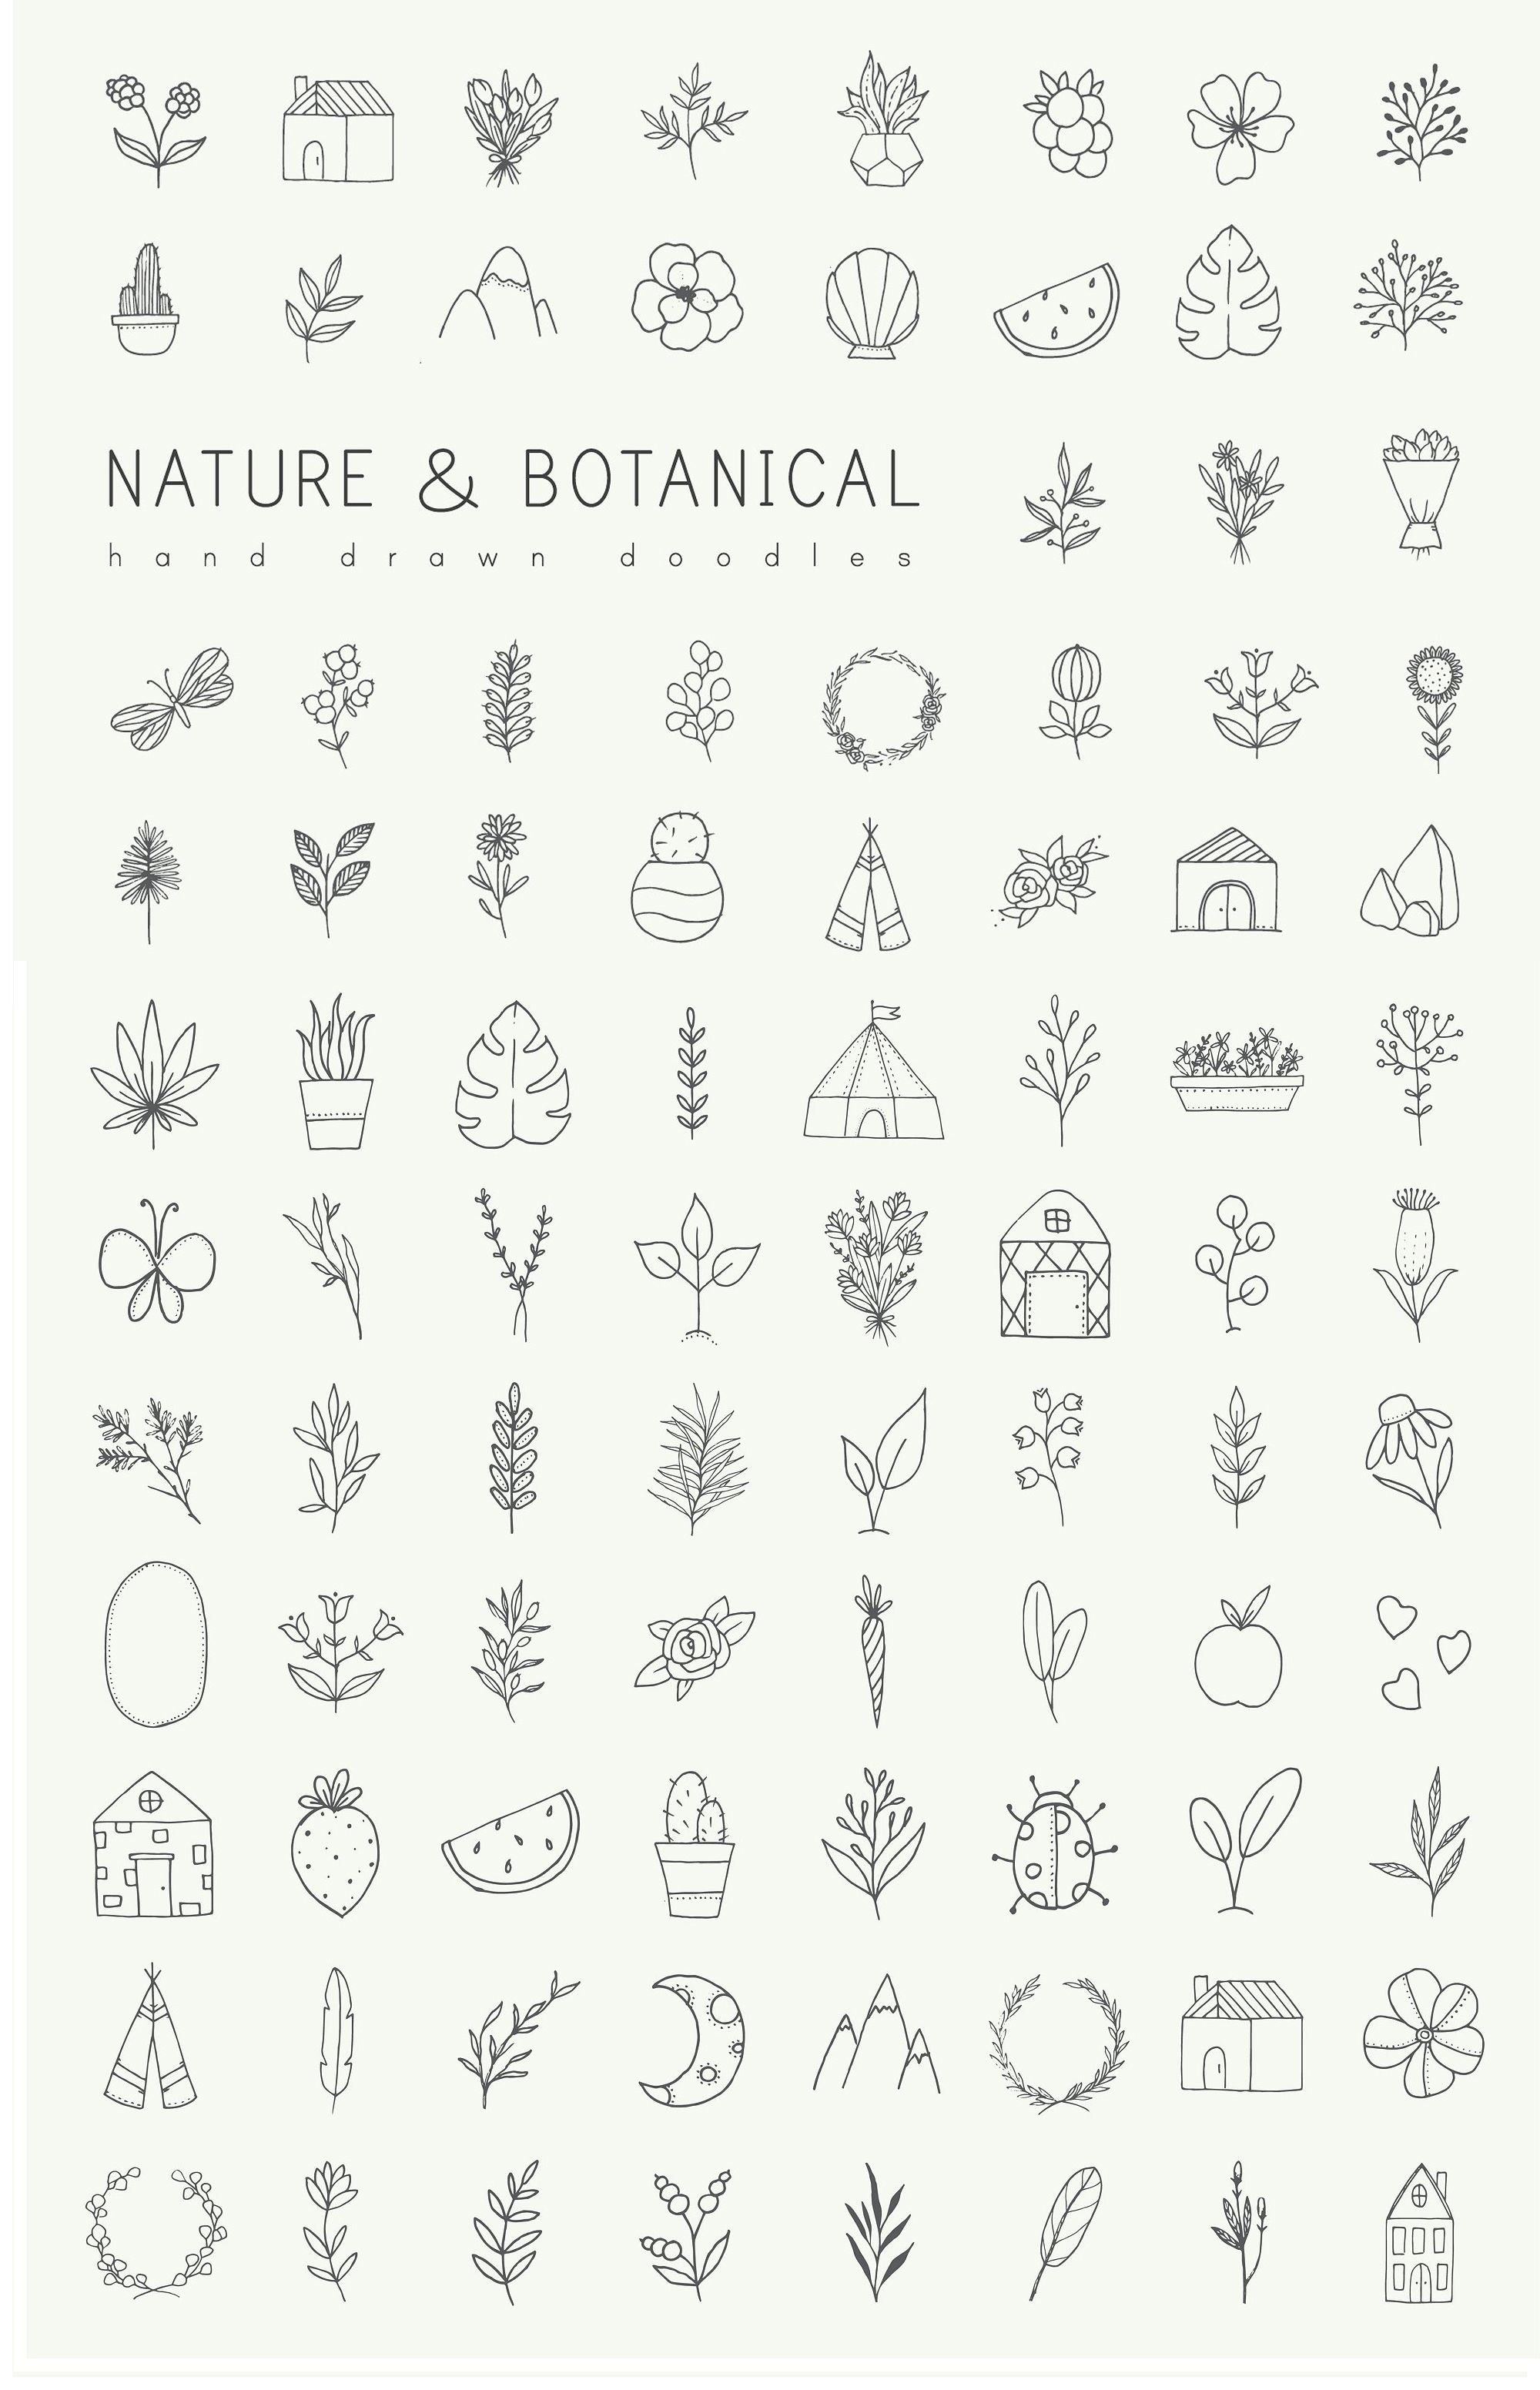 Photo of Hand drawn nature & plants doodles